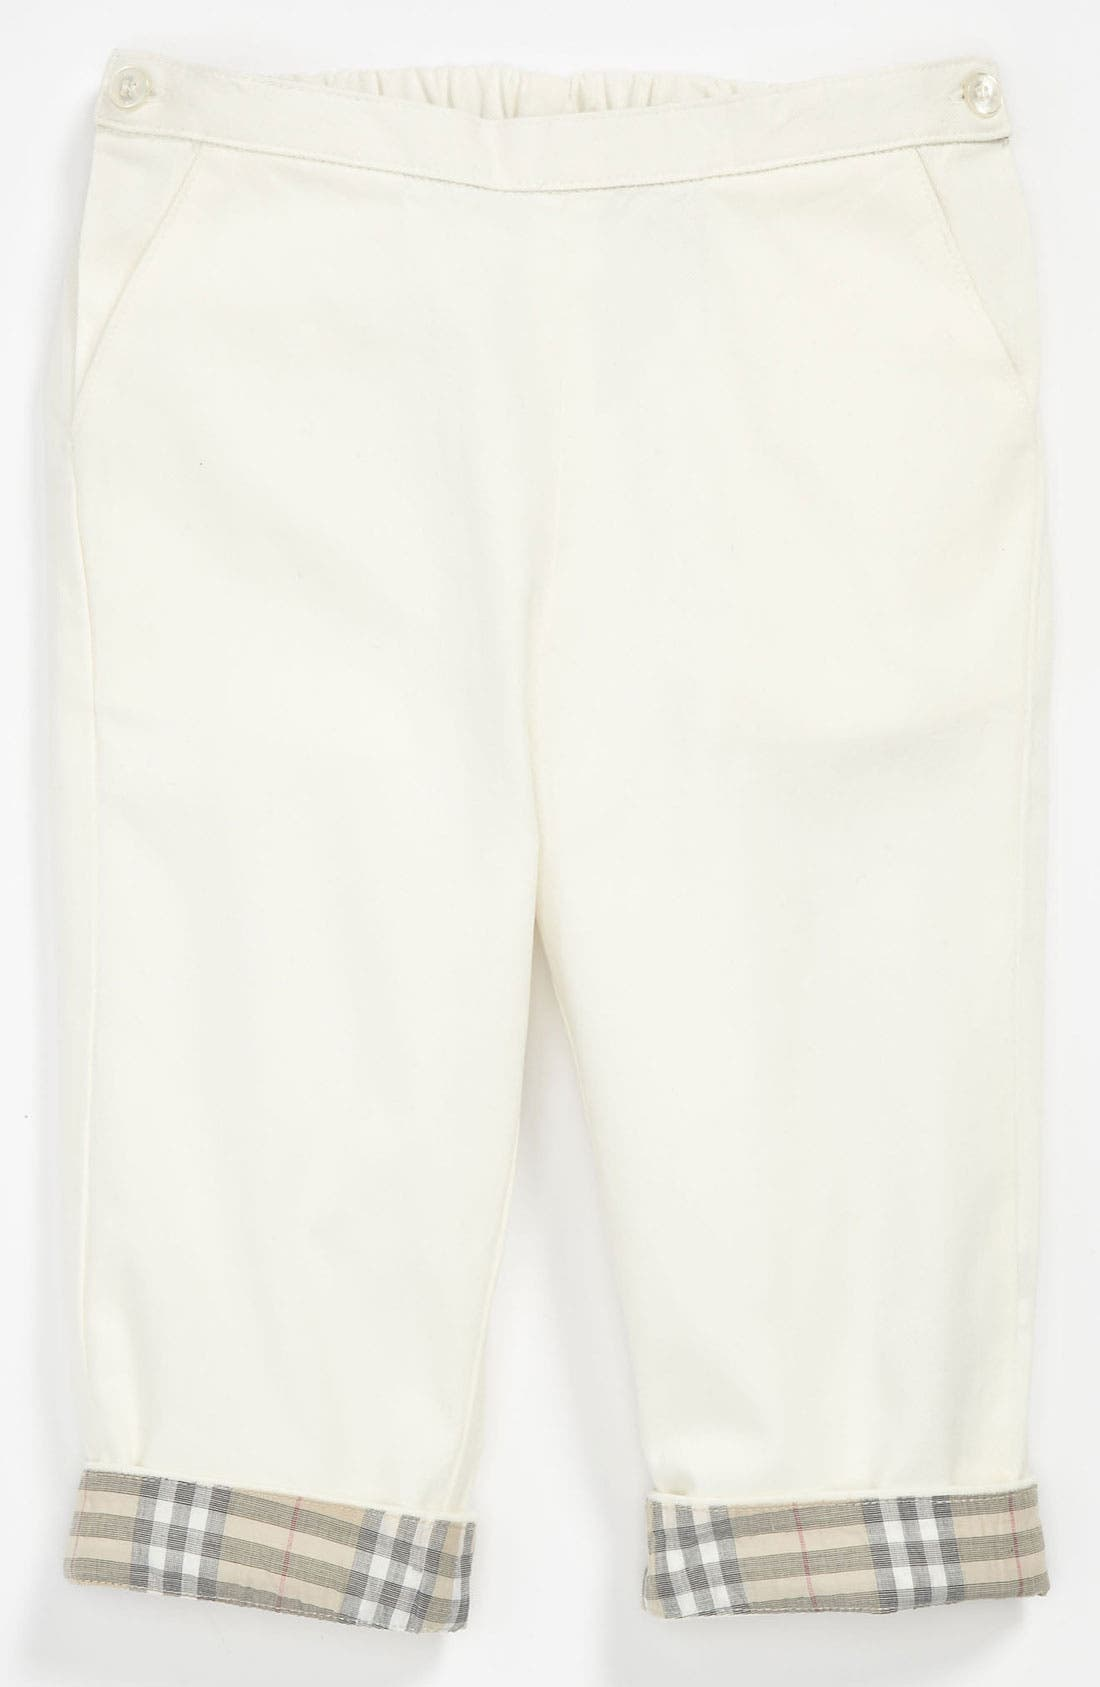 Main Image - Burberry 'Paddy' Trousers (Baby)